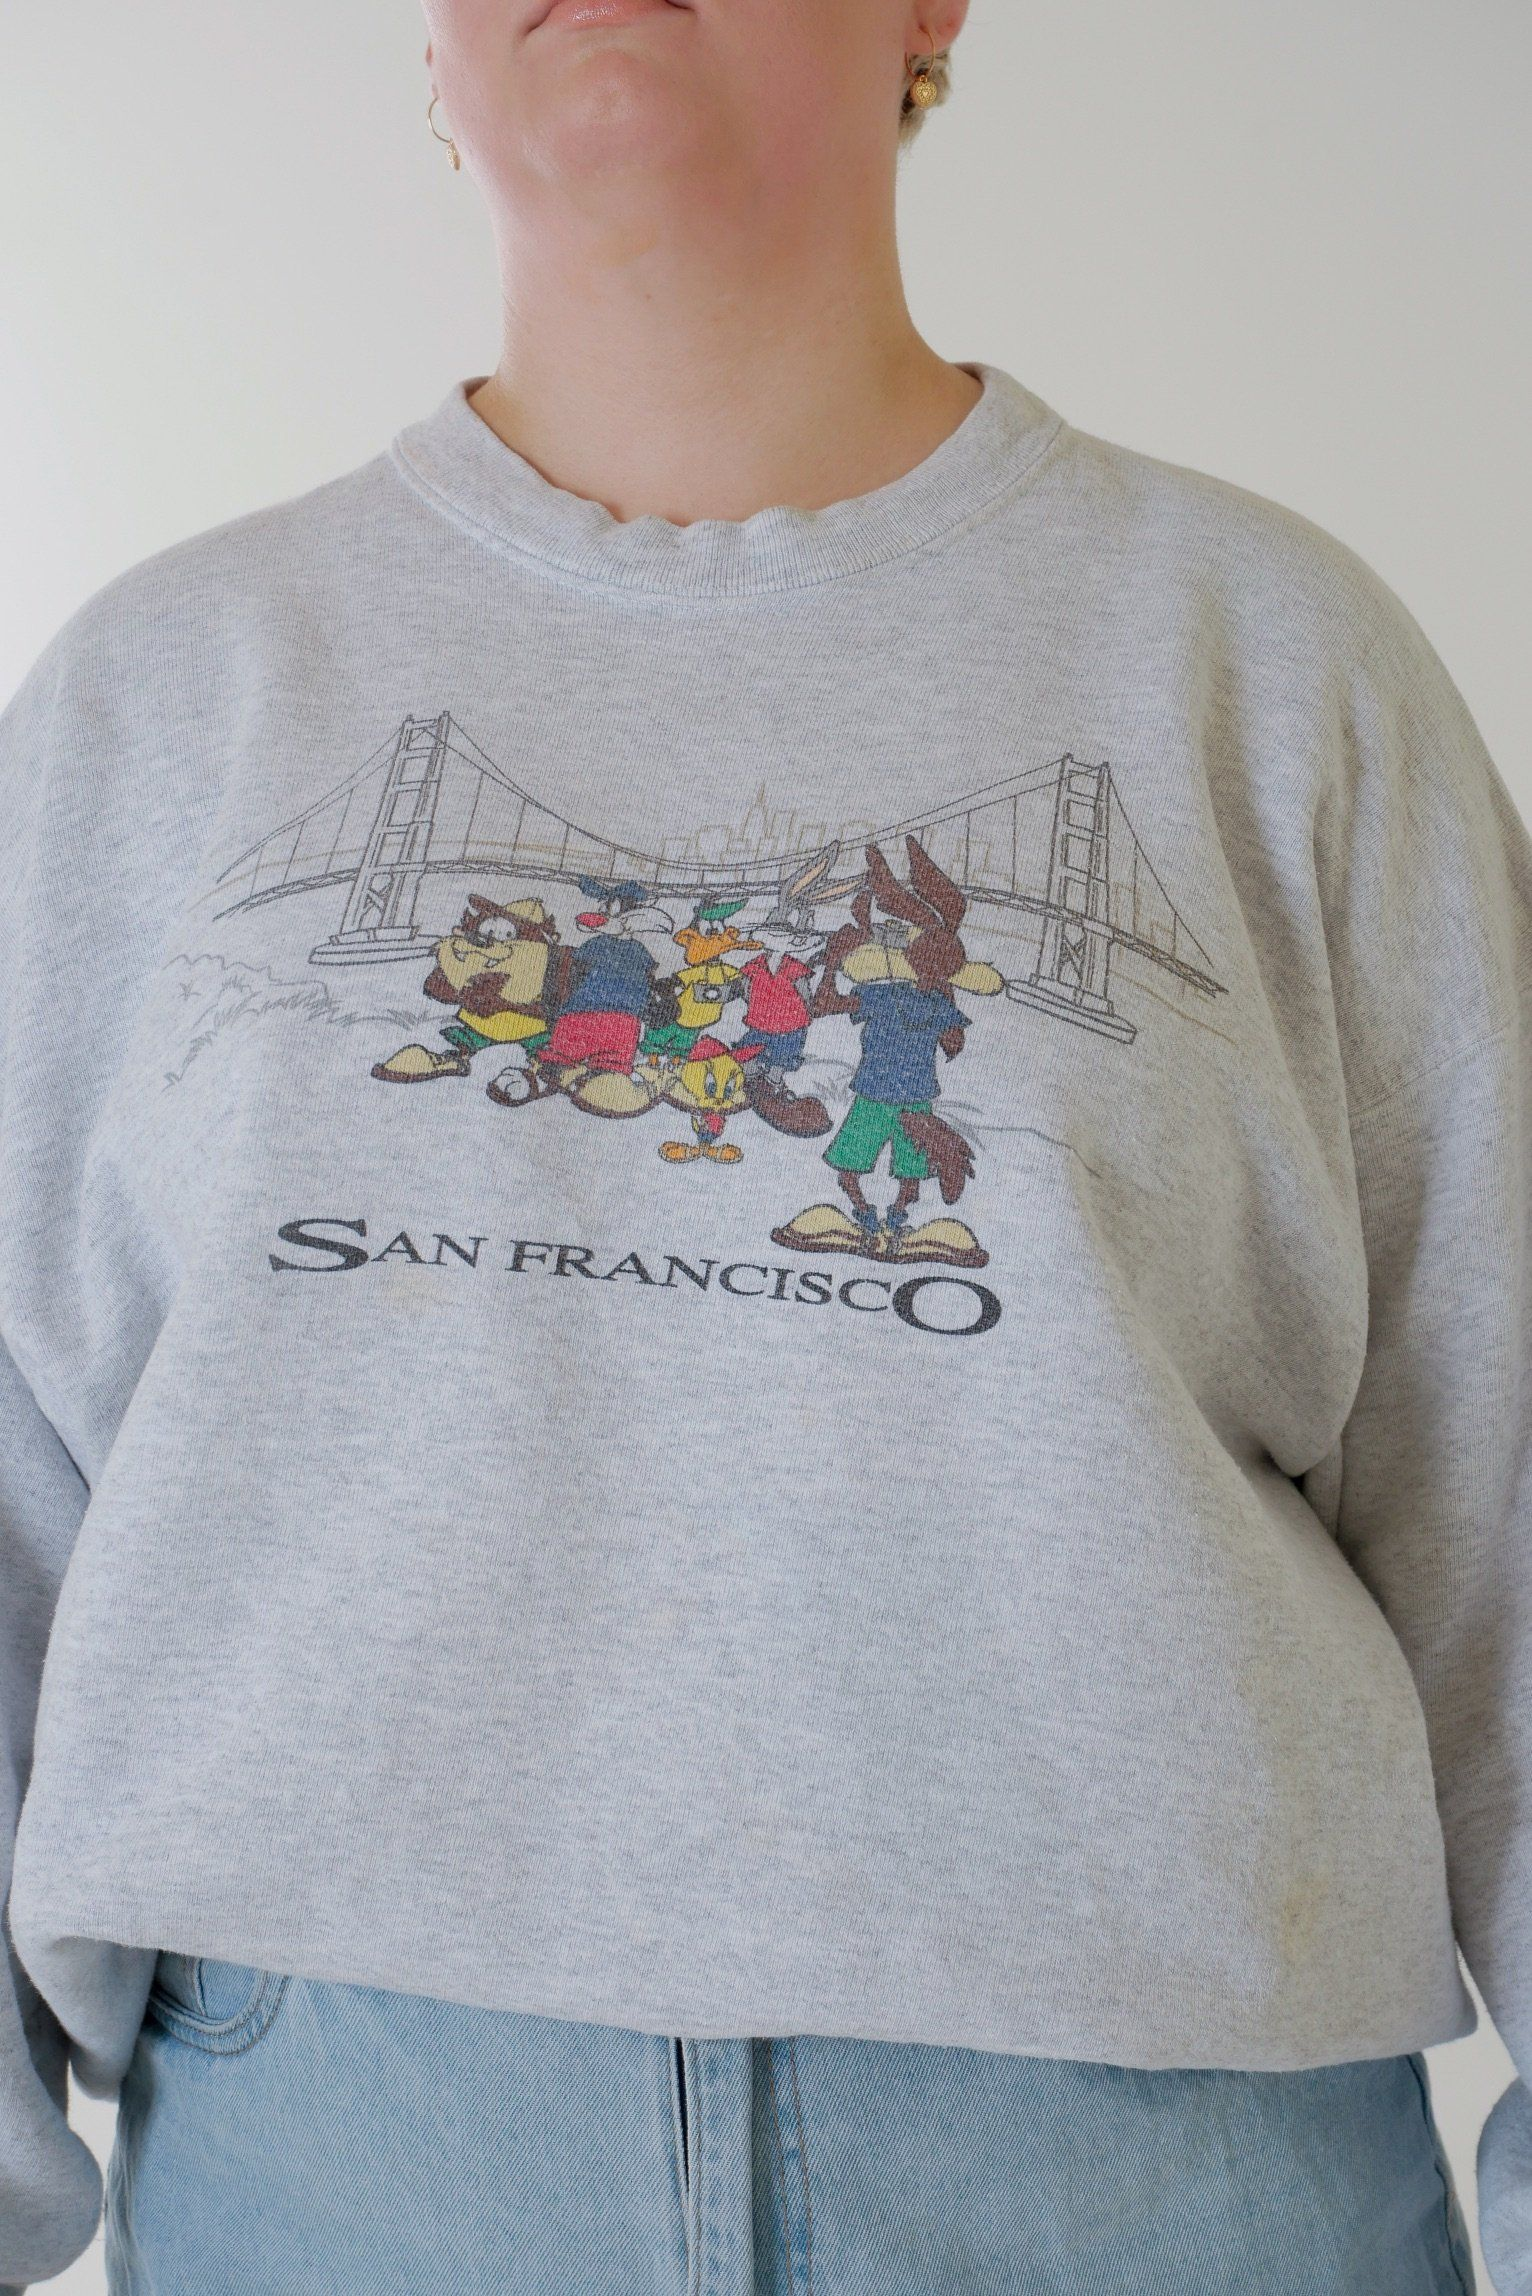 Warner Bros Cartoon San Fransisco Sweater